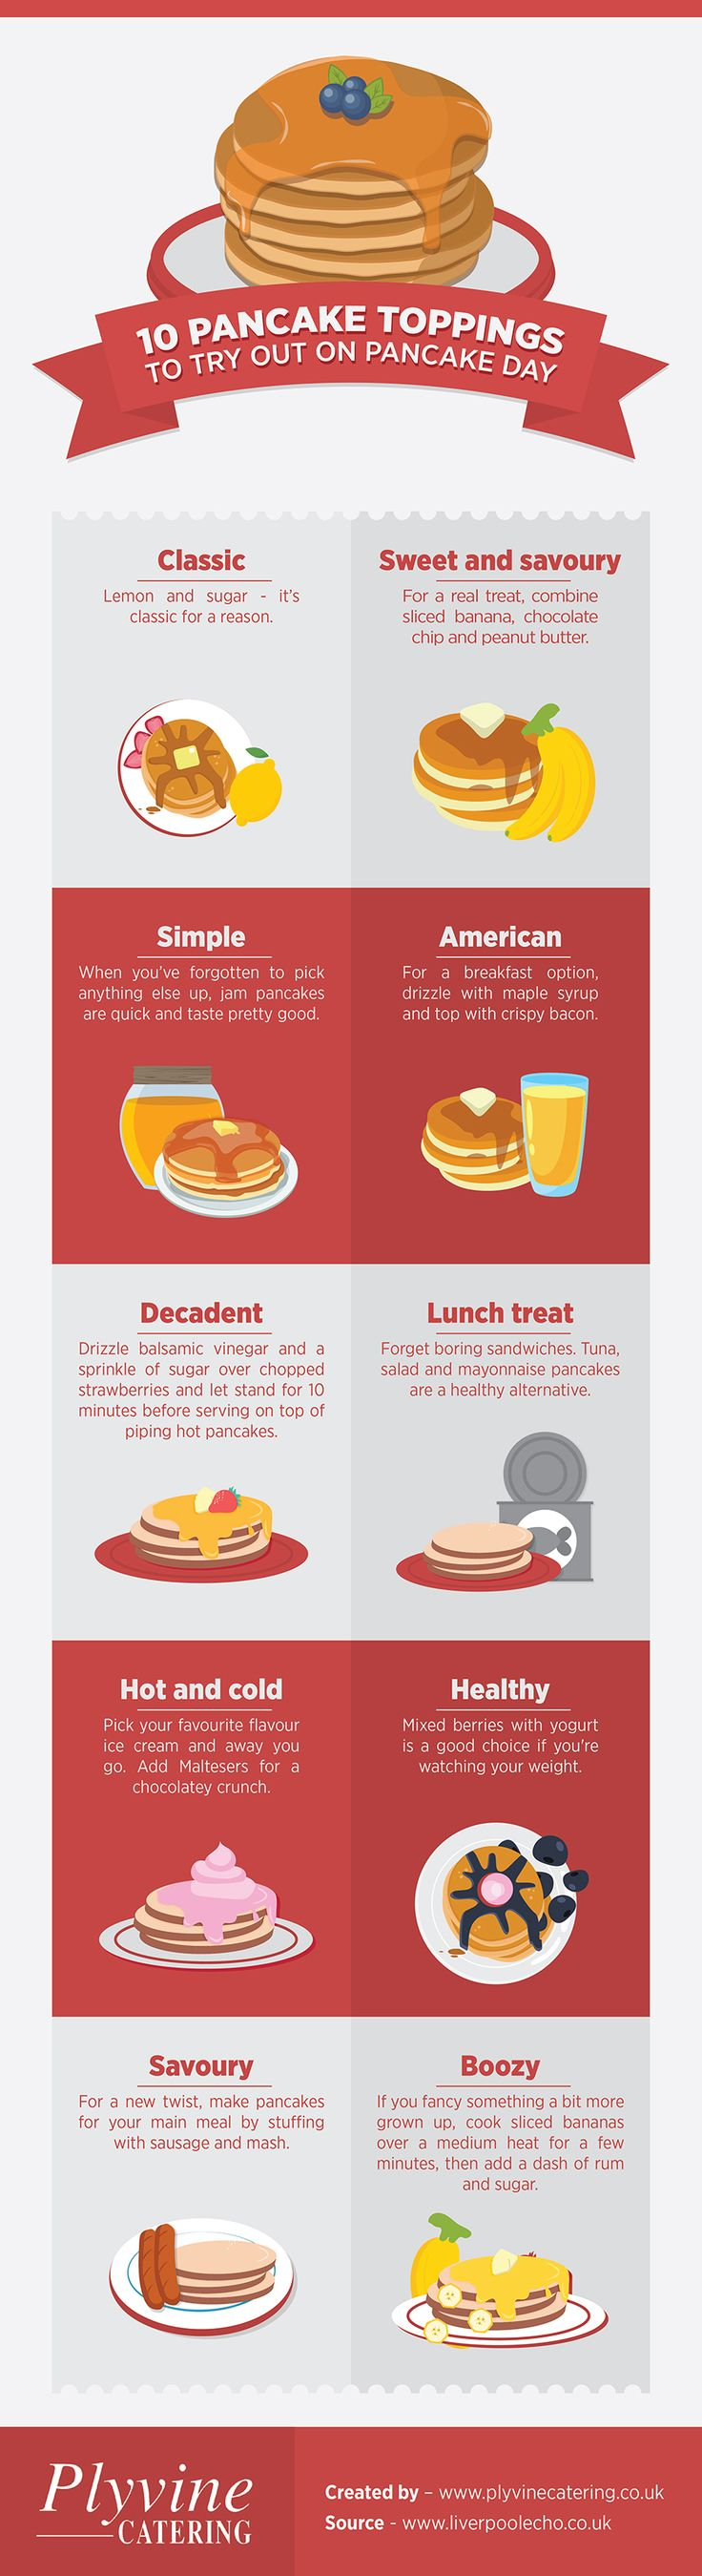 So Pancake Day Is Just Around The Corner, What Do You Plan To Eat Yours  With? We Look At 10 Tasty Toppings To Try In This Infographic.